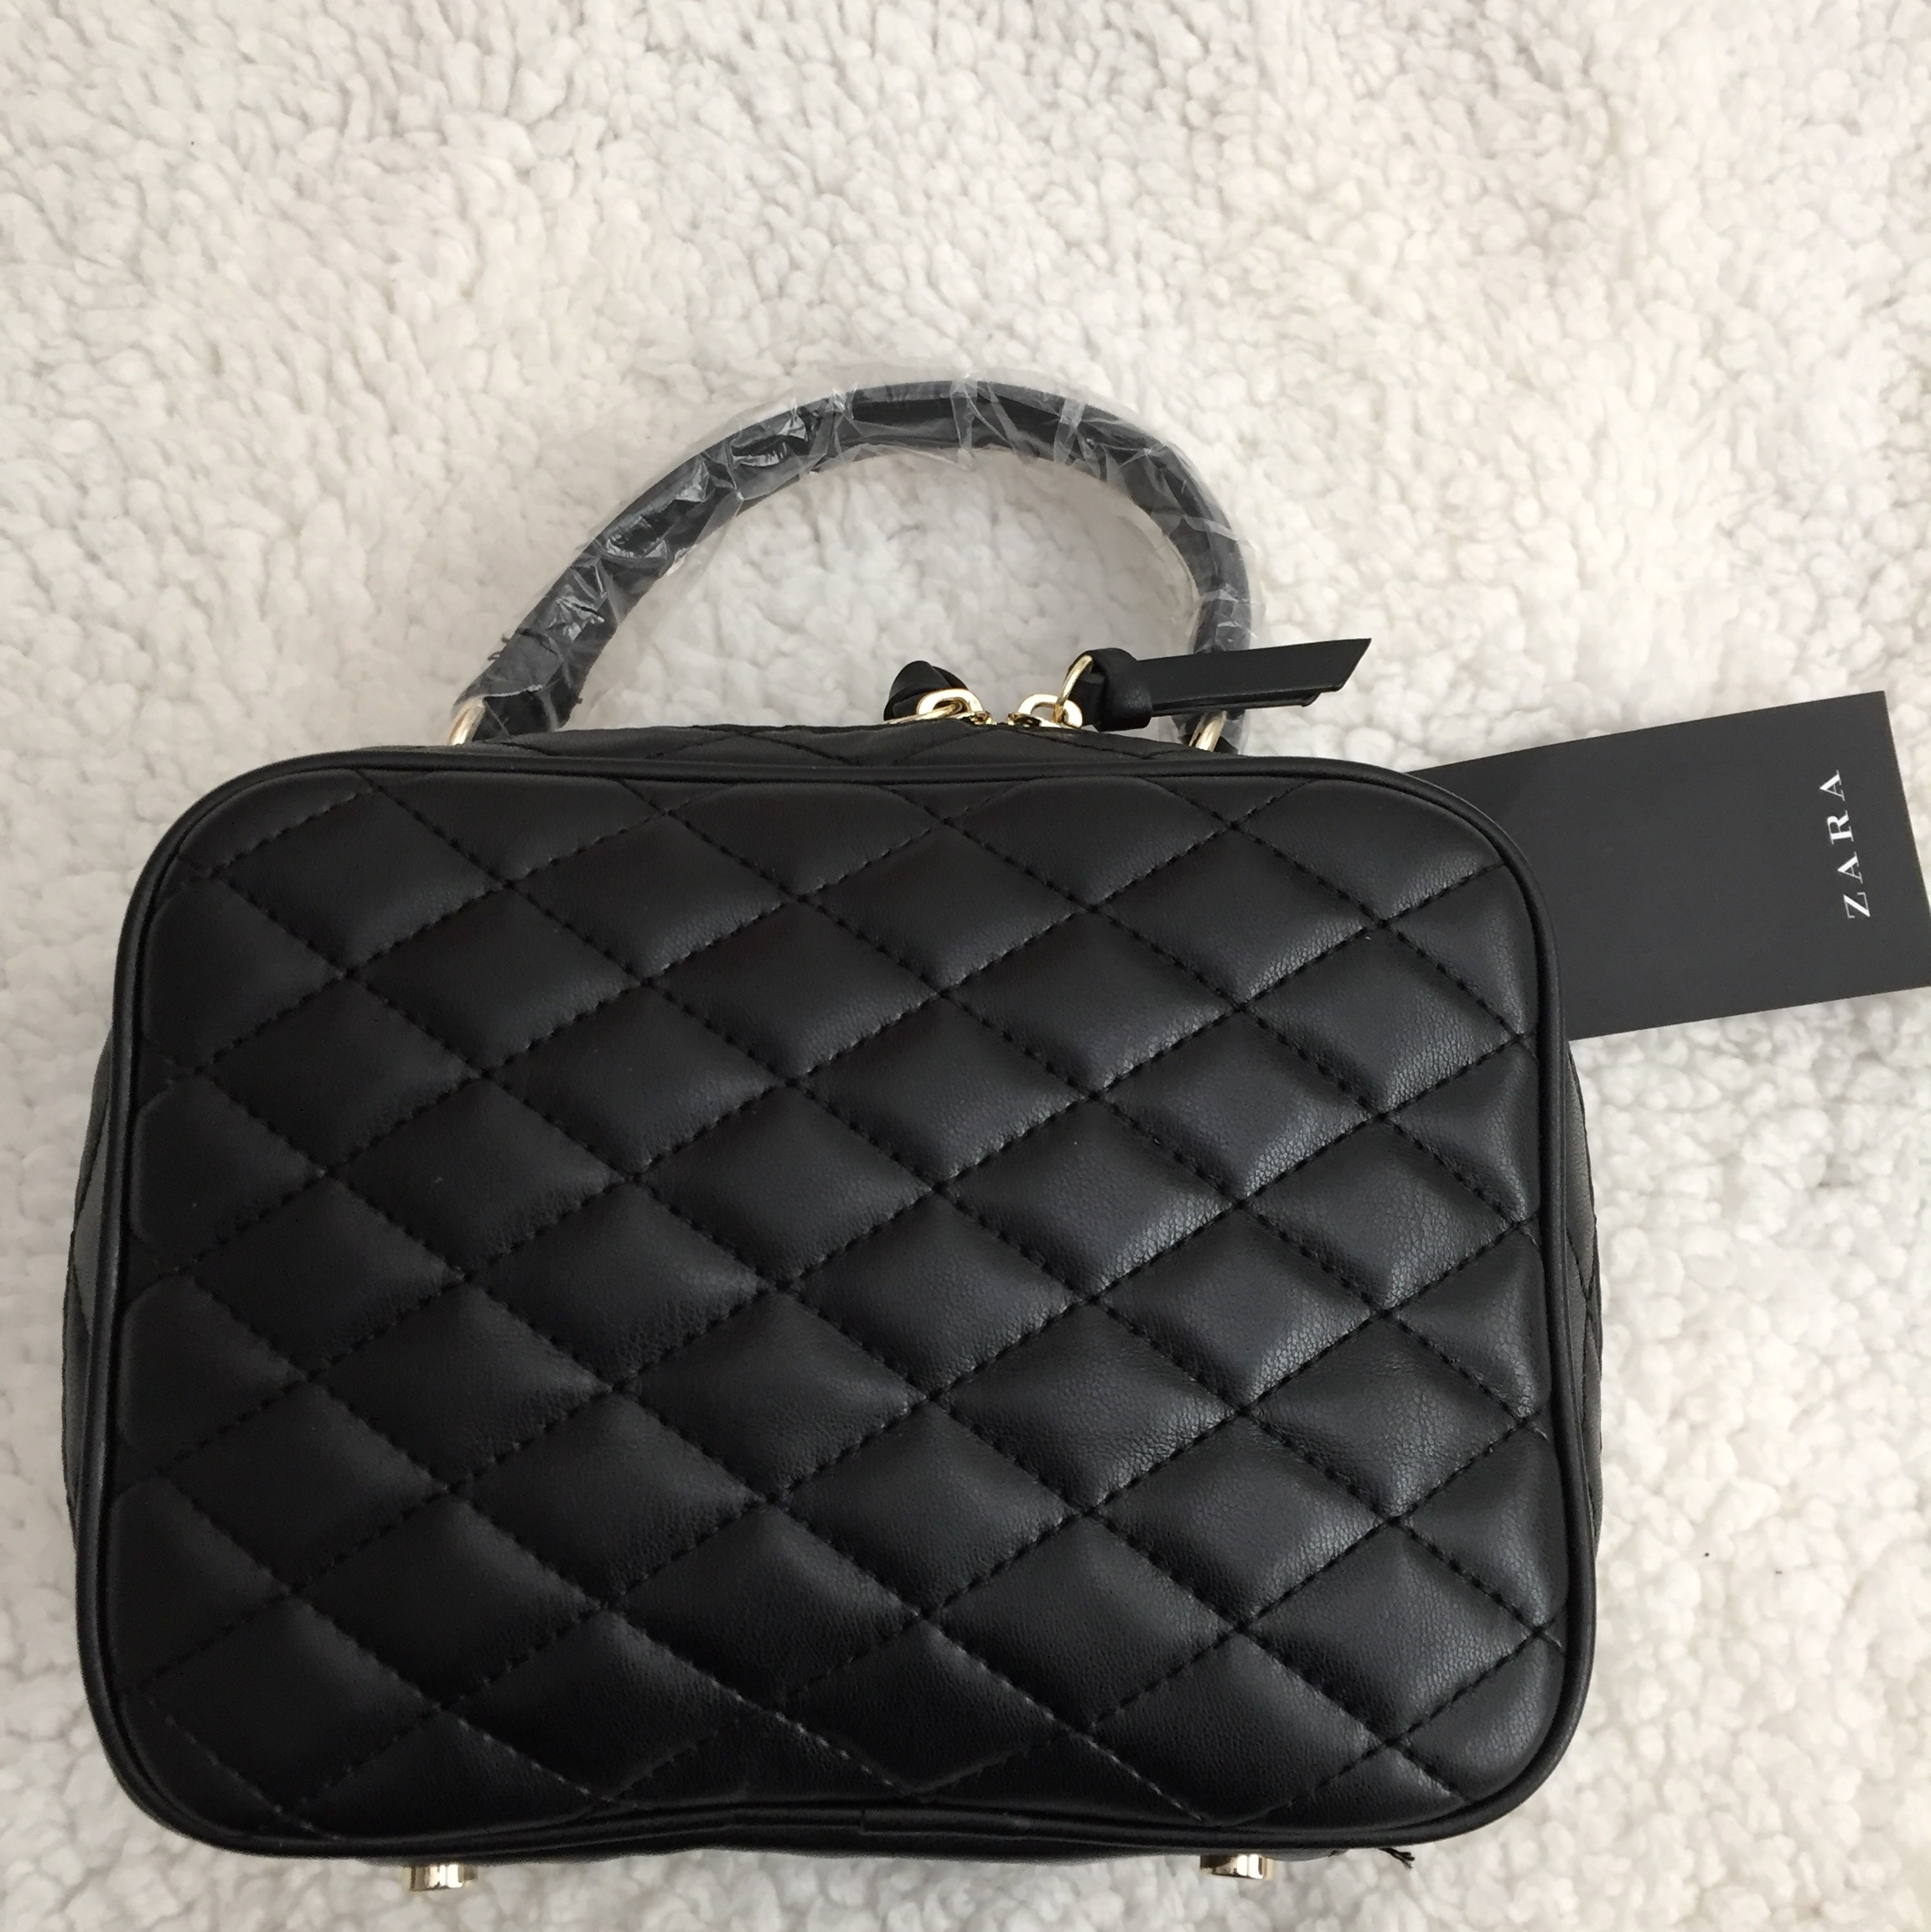 3f62b1be Zara quilted crossbody bag. Color: black. Non... - Depop